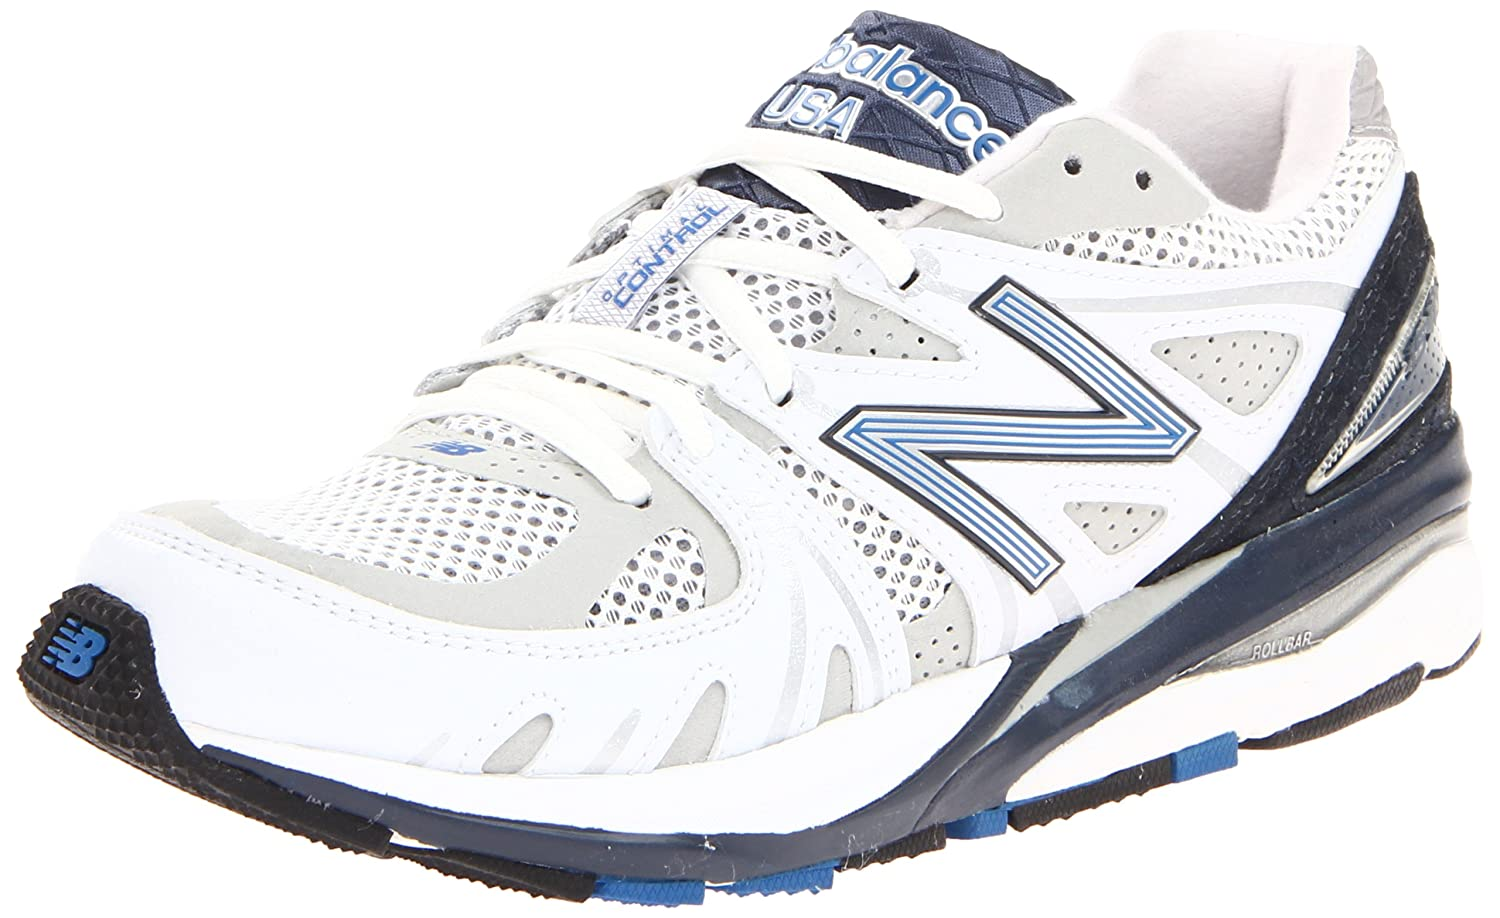 New Balance Men's M1540 Running Shoe B005BW5NJK 16 B - Narrow|White/navy